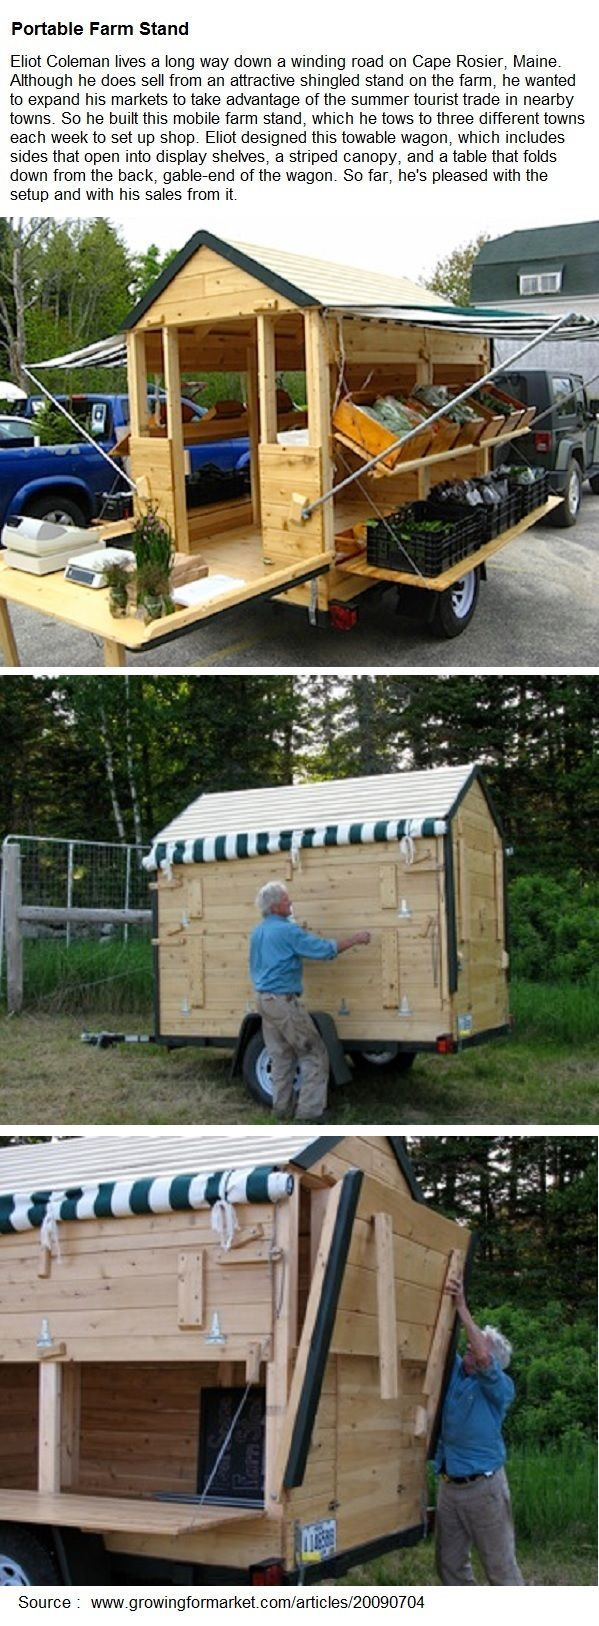 Farmers Market Portable Toilet : Best images about farmers market display ideas on